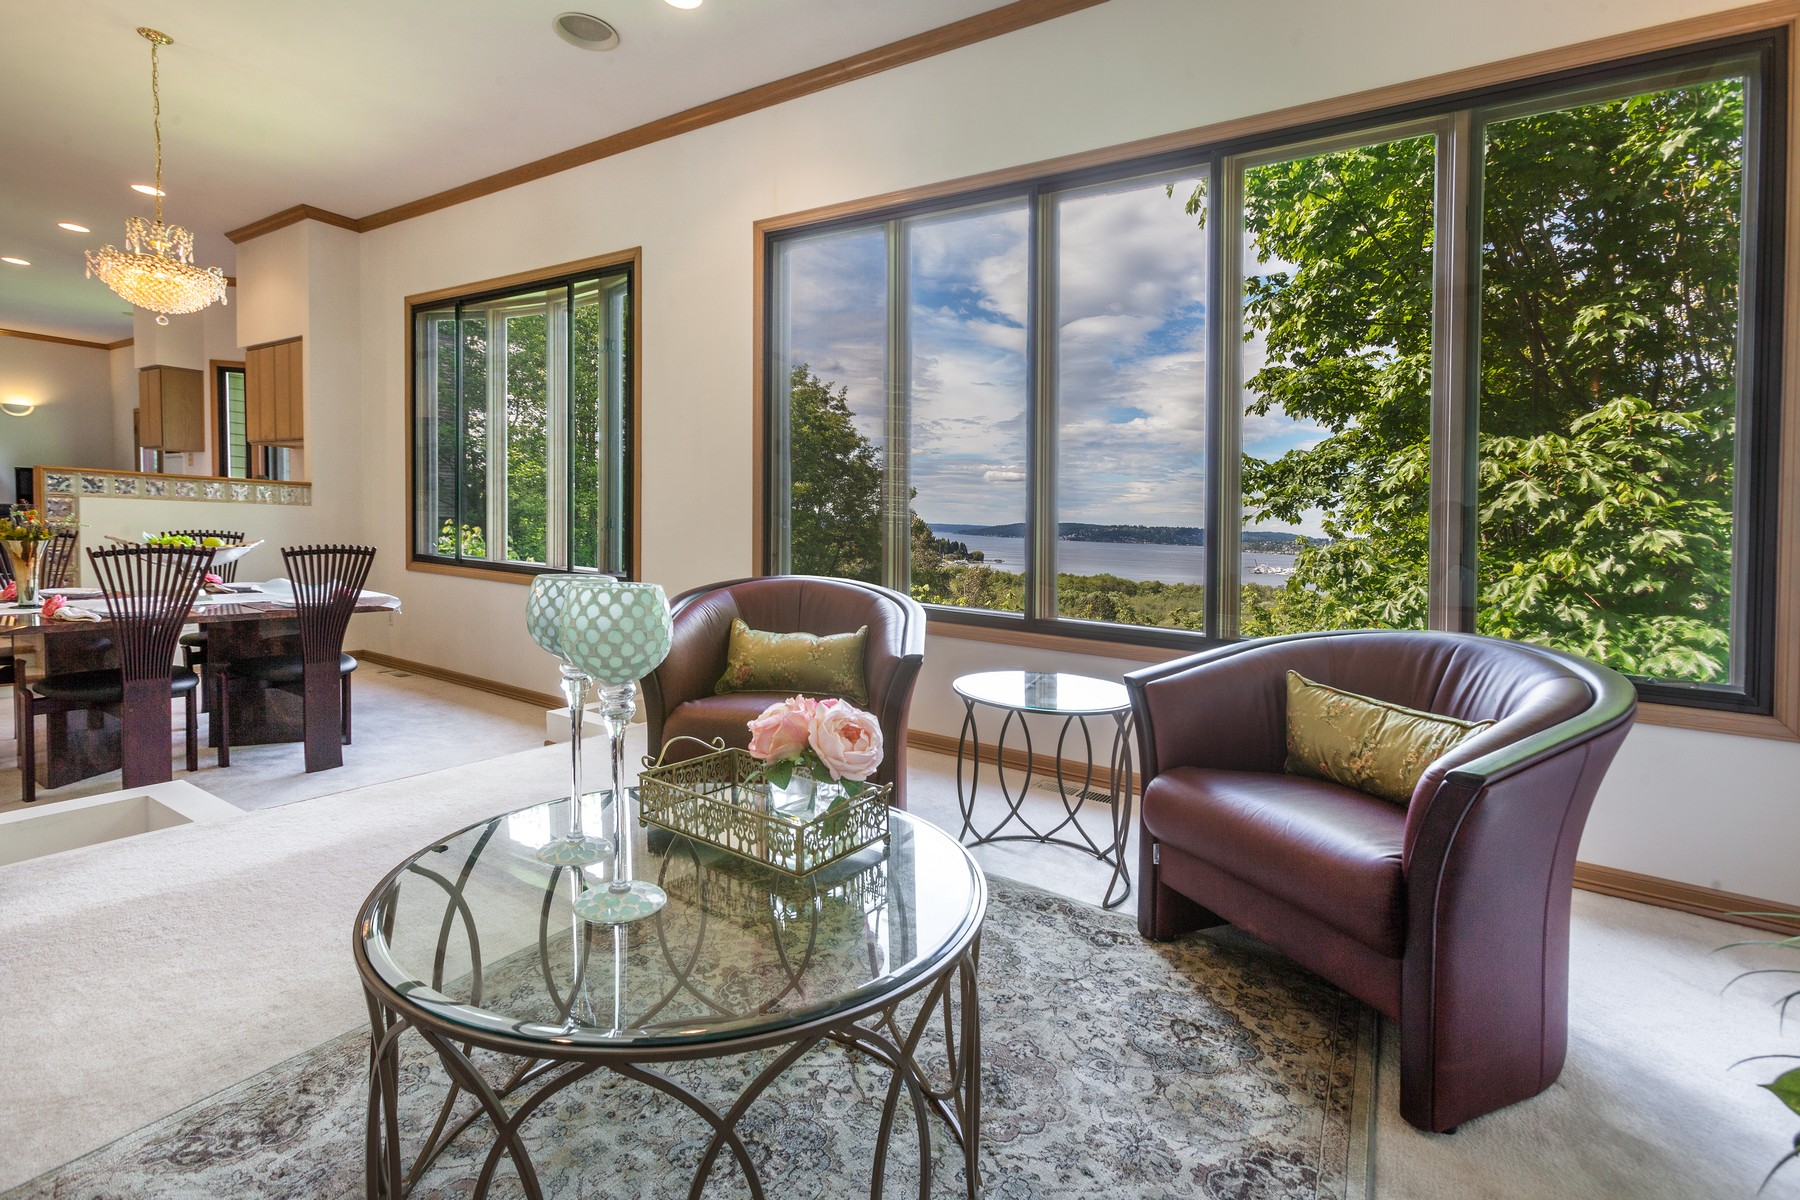 Additional photo for property listing at Clyde Hill Contemporary 9836 NE 34th Pl 贝尔维尤, 华盛顿州 98004 美国